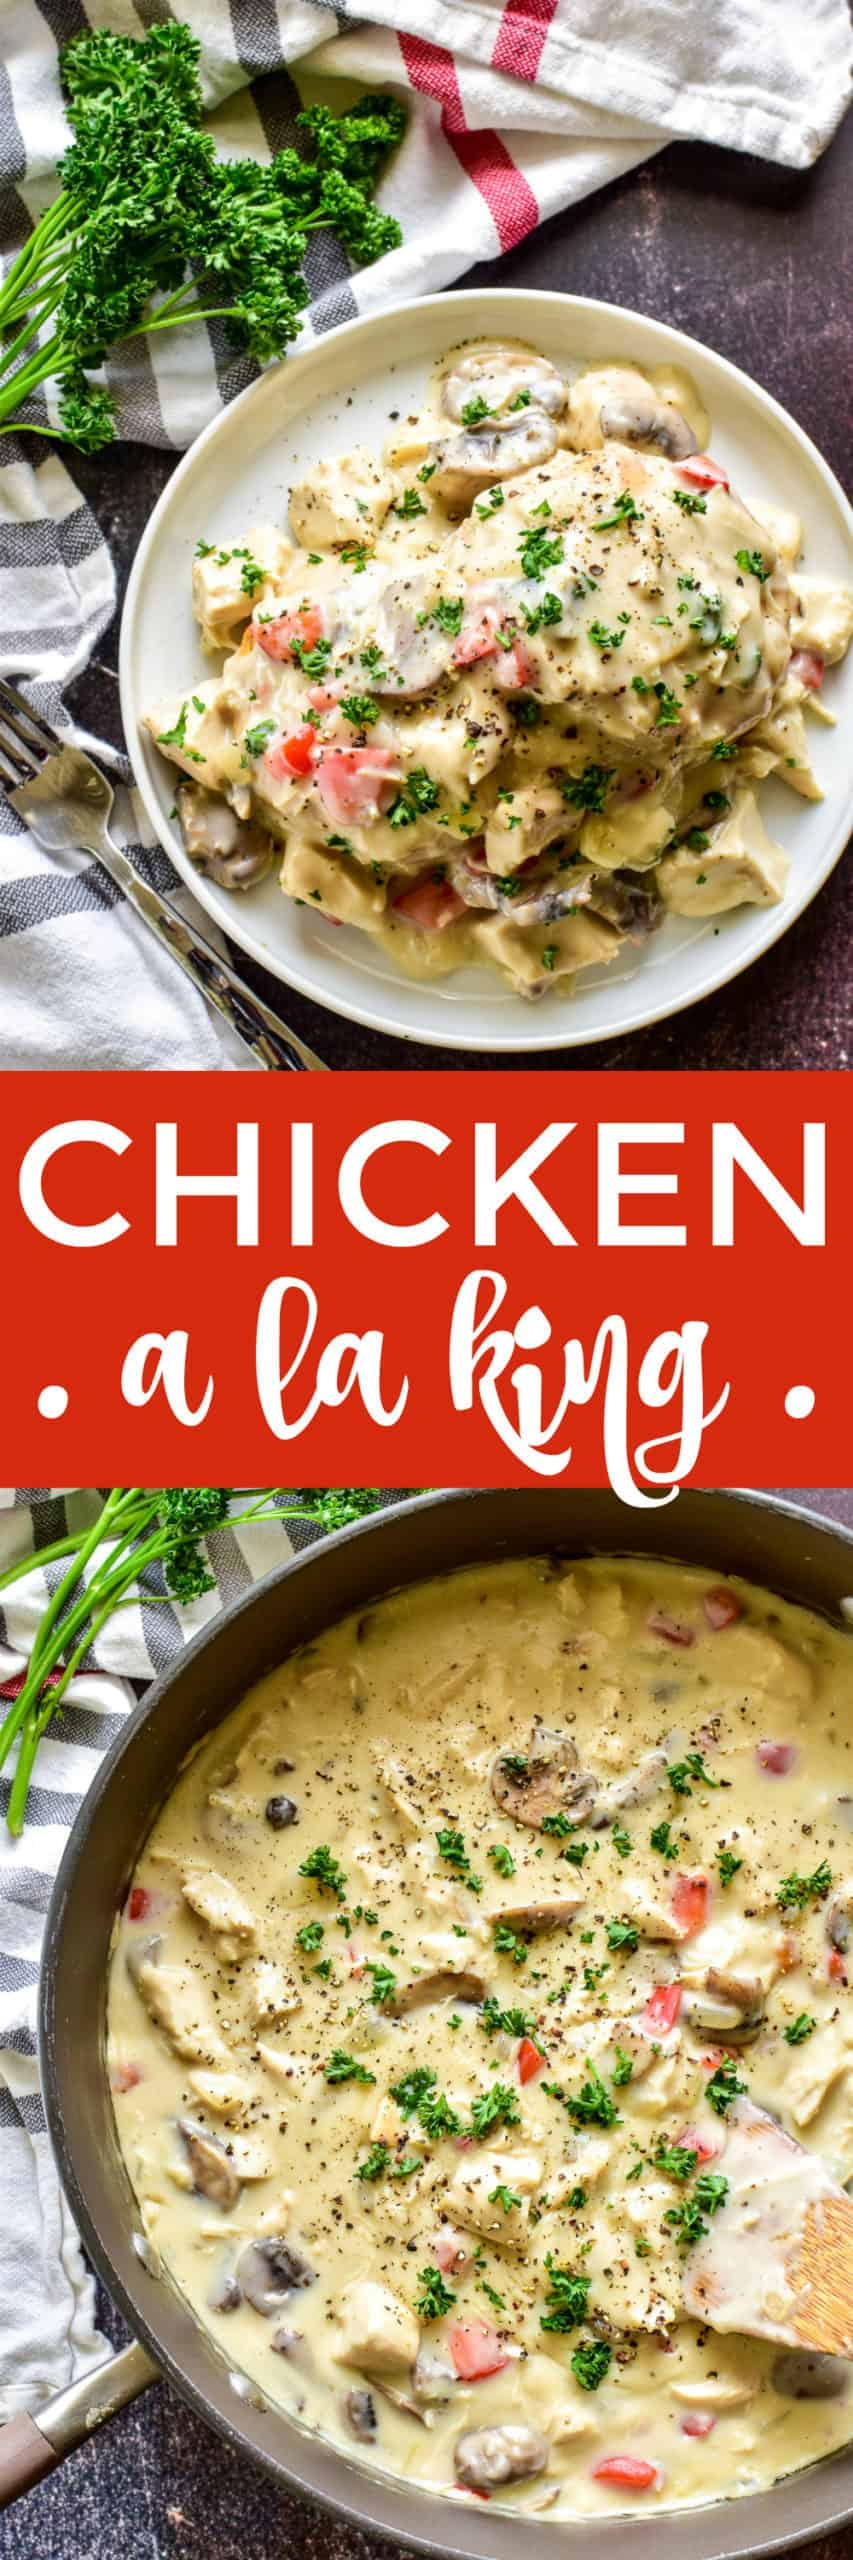 Collage image of Chicken a la King